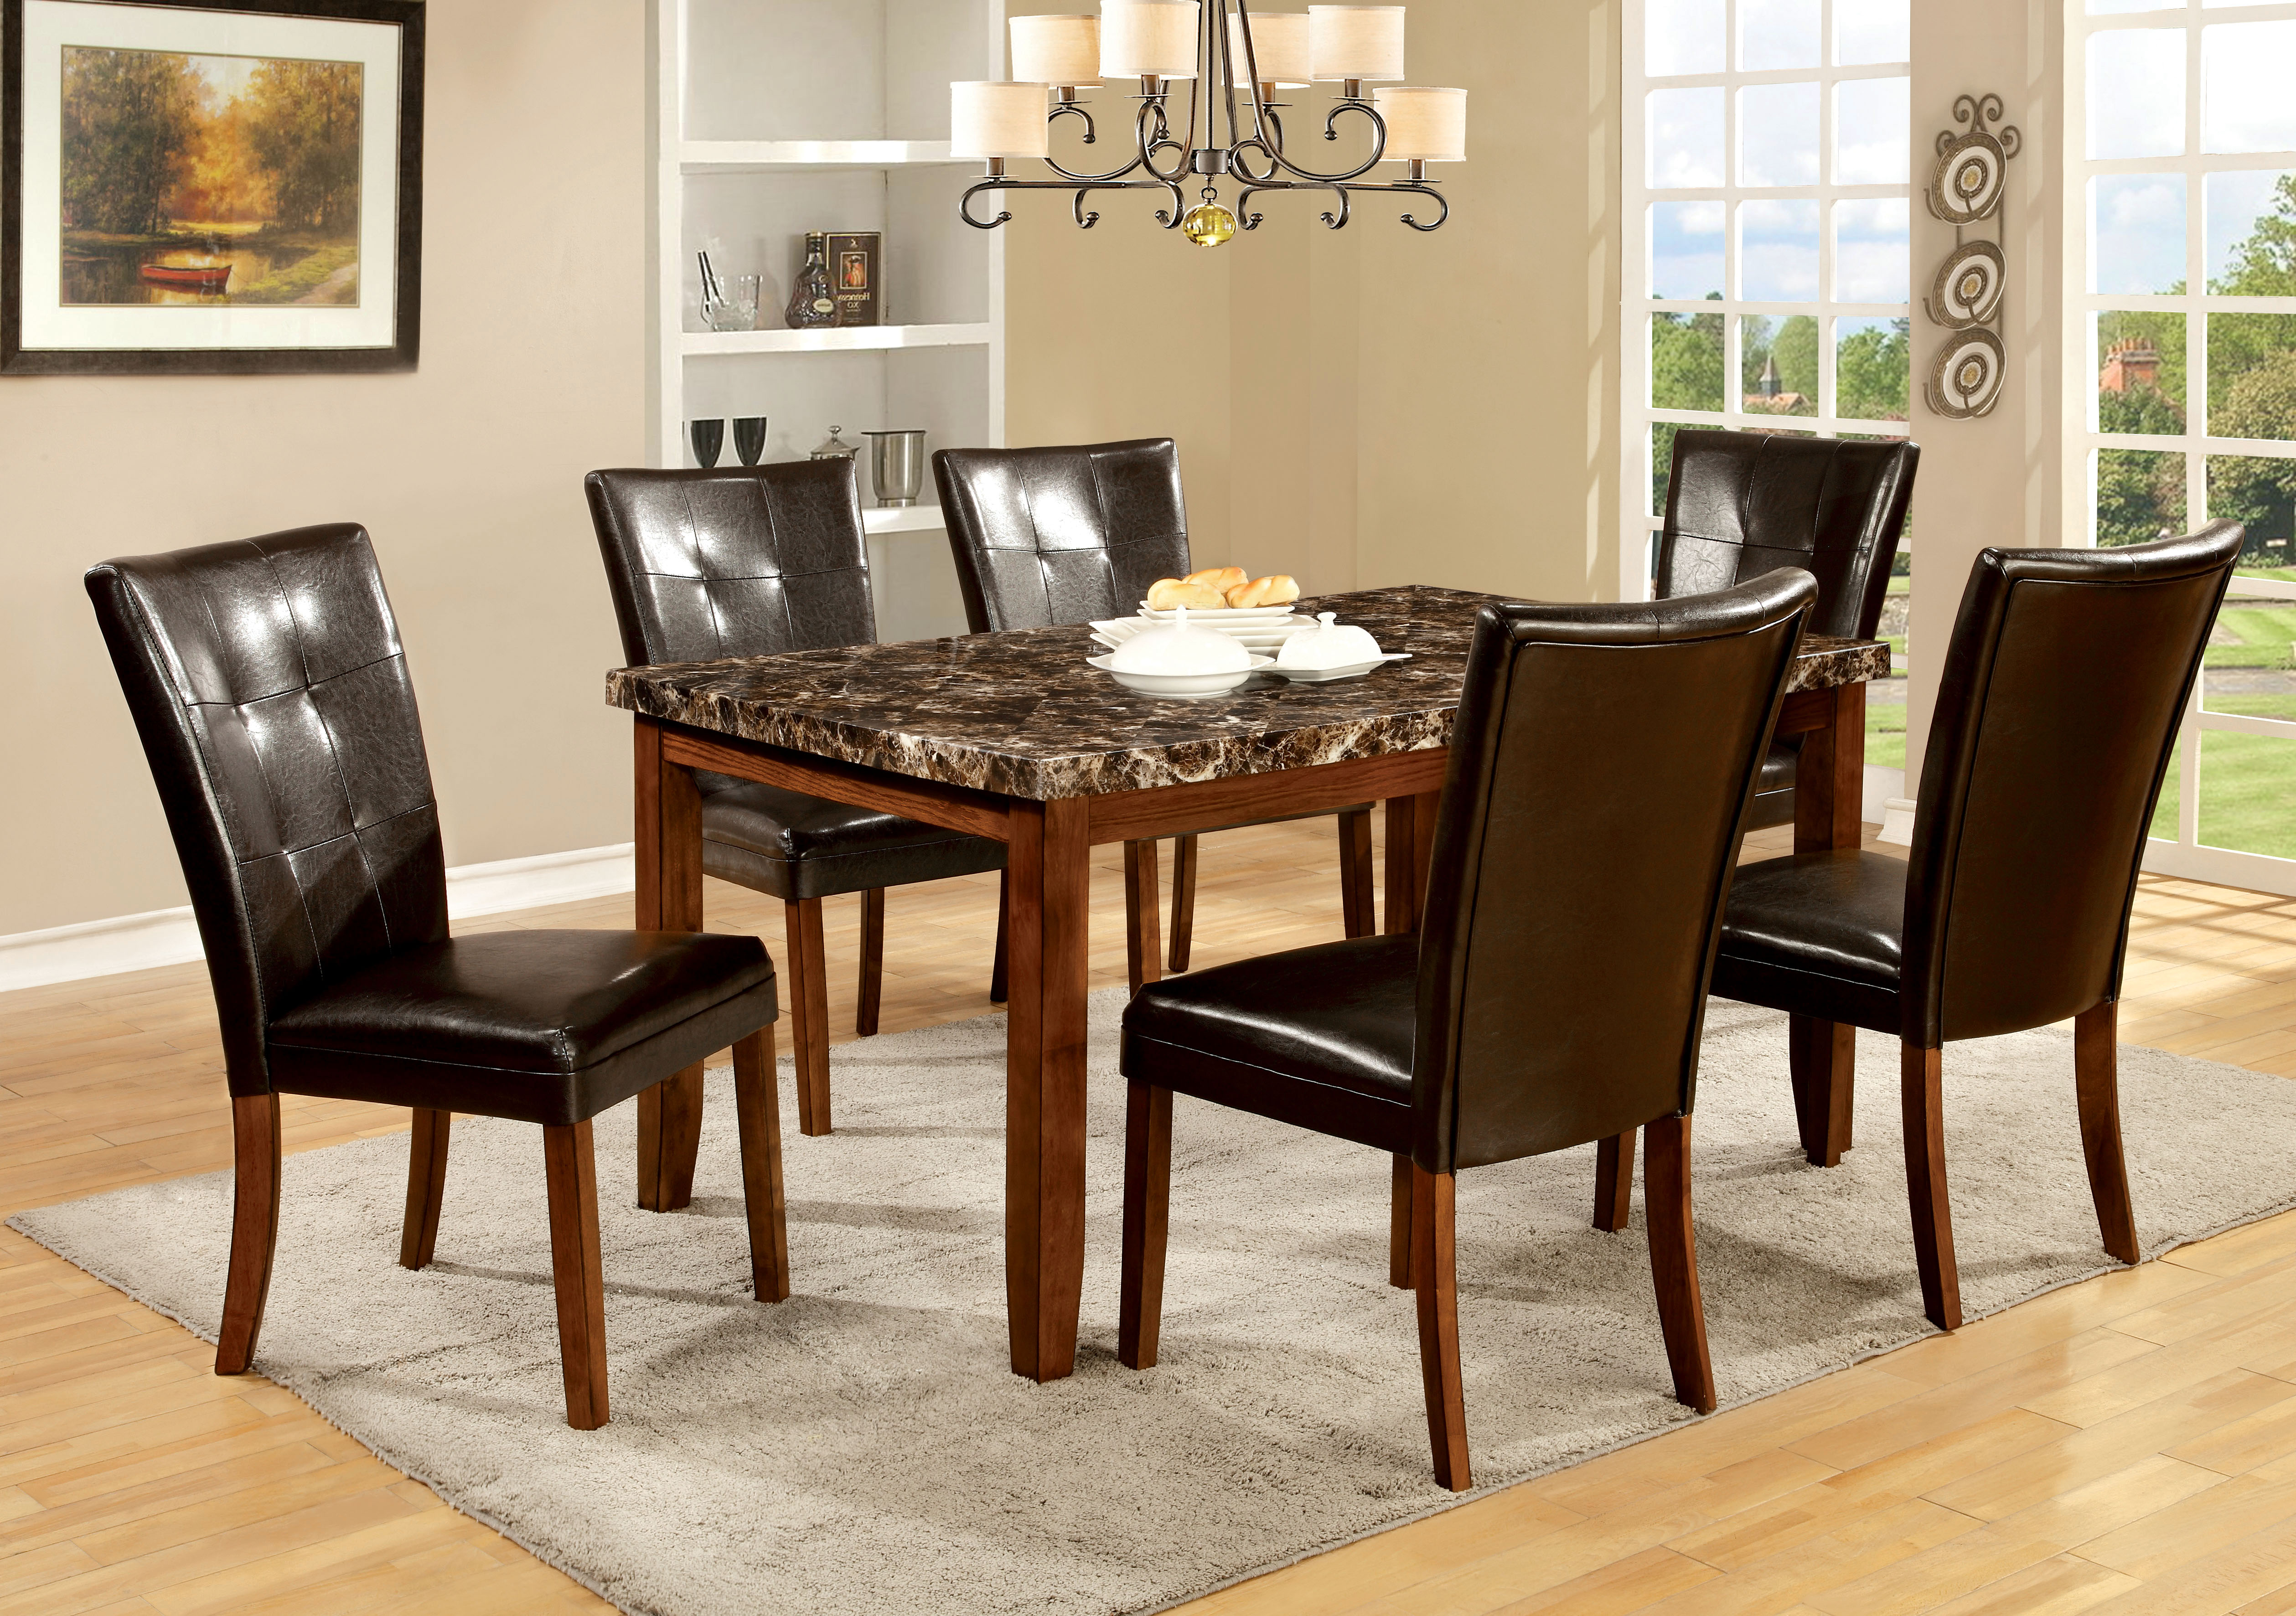 Furniture Of America Antique Oak Moralli Faux Marble Top Dining Table Brown Marble Top Dining Table Oak Dining Sets Contemporary Dining Table